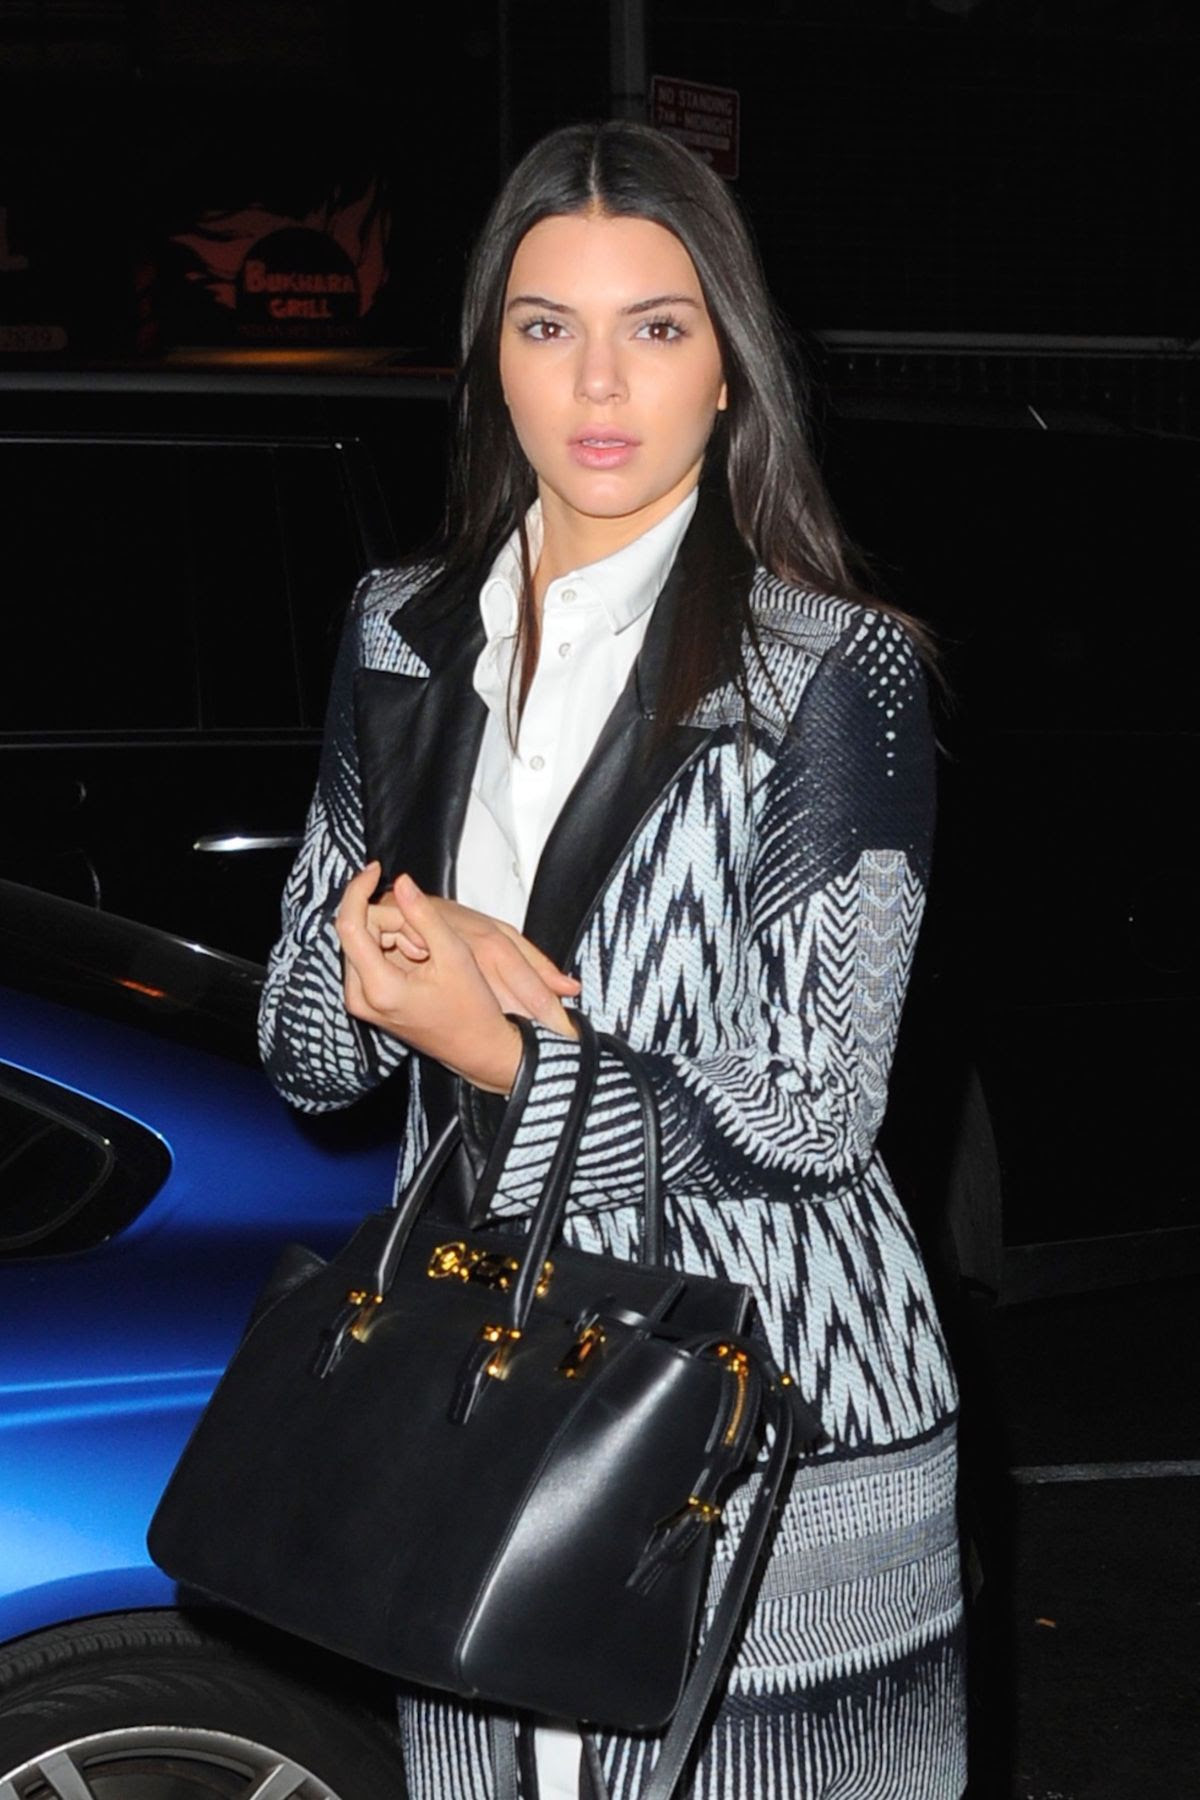 KENDALL JENNER Arrives at Red Stixs Restaurant in New York